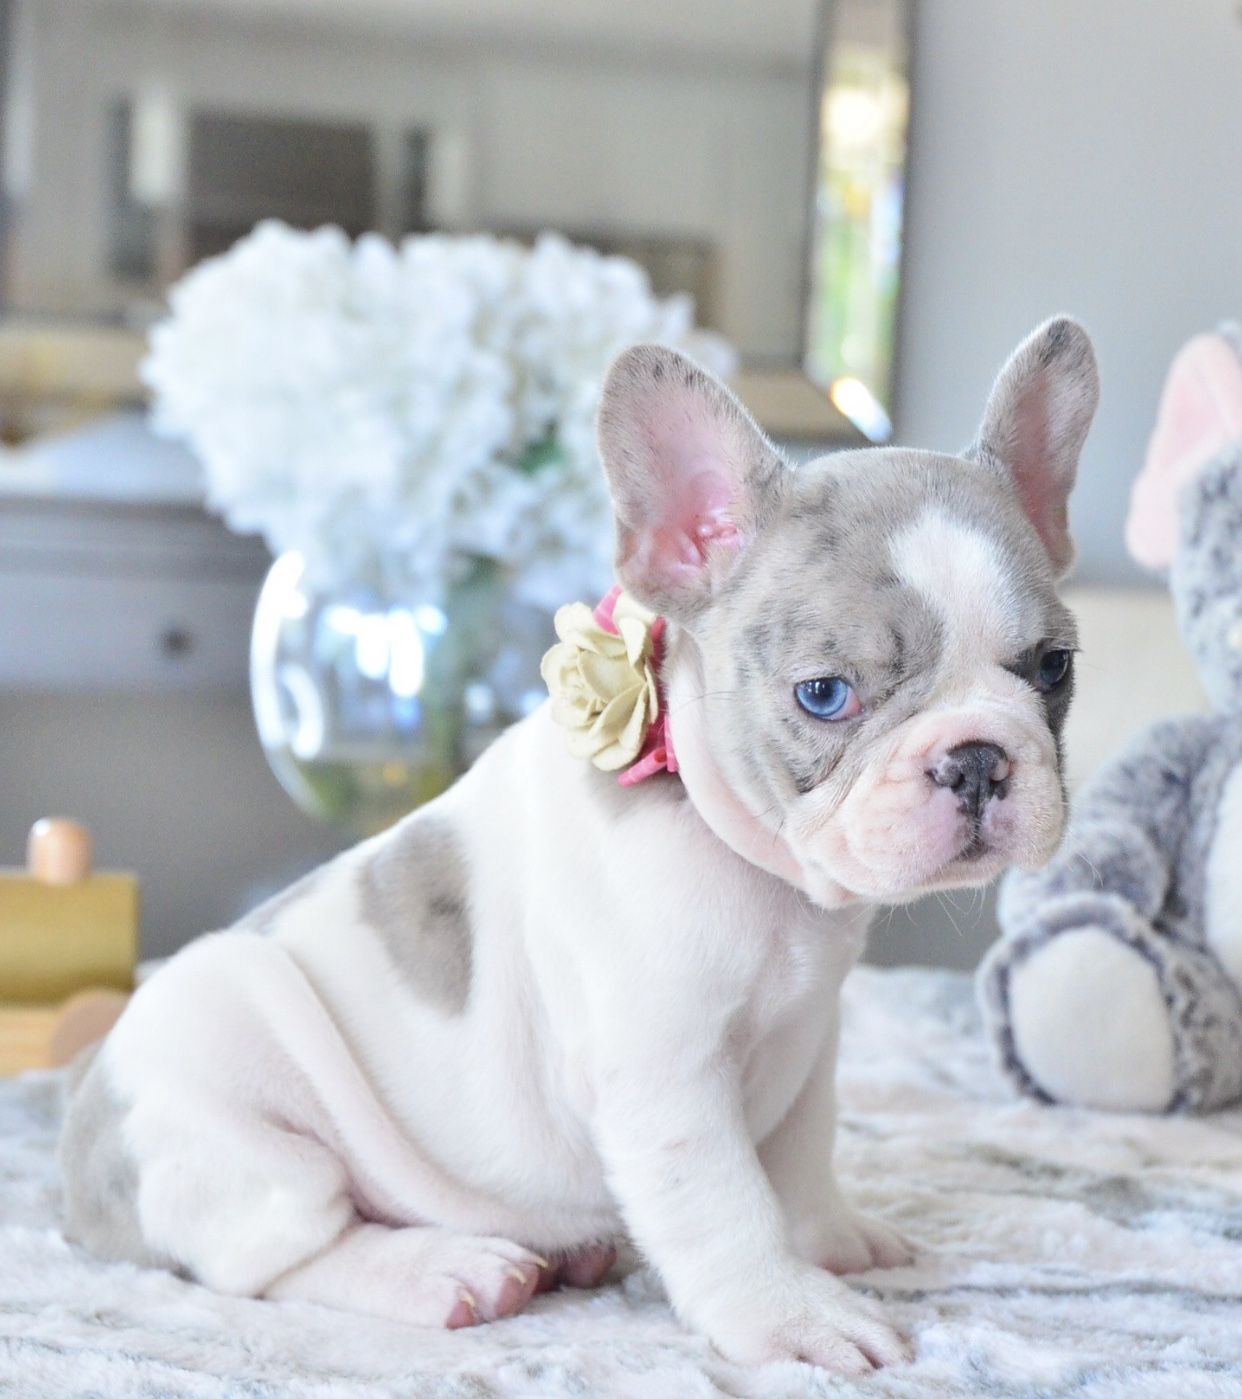 P O R T I A Blue Pied Merle Female Available Www Poeticfrenchbulldogs Com Frenc French Bulldog Puppies Cute Dogs And Puppies Bulldog Puppies